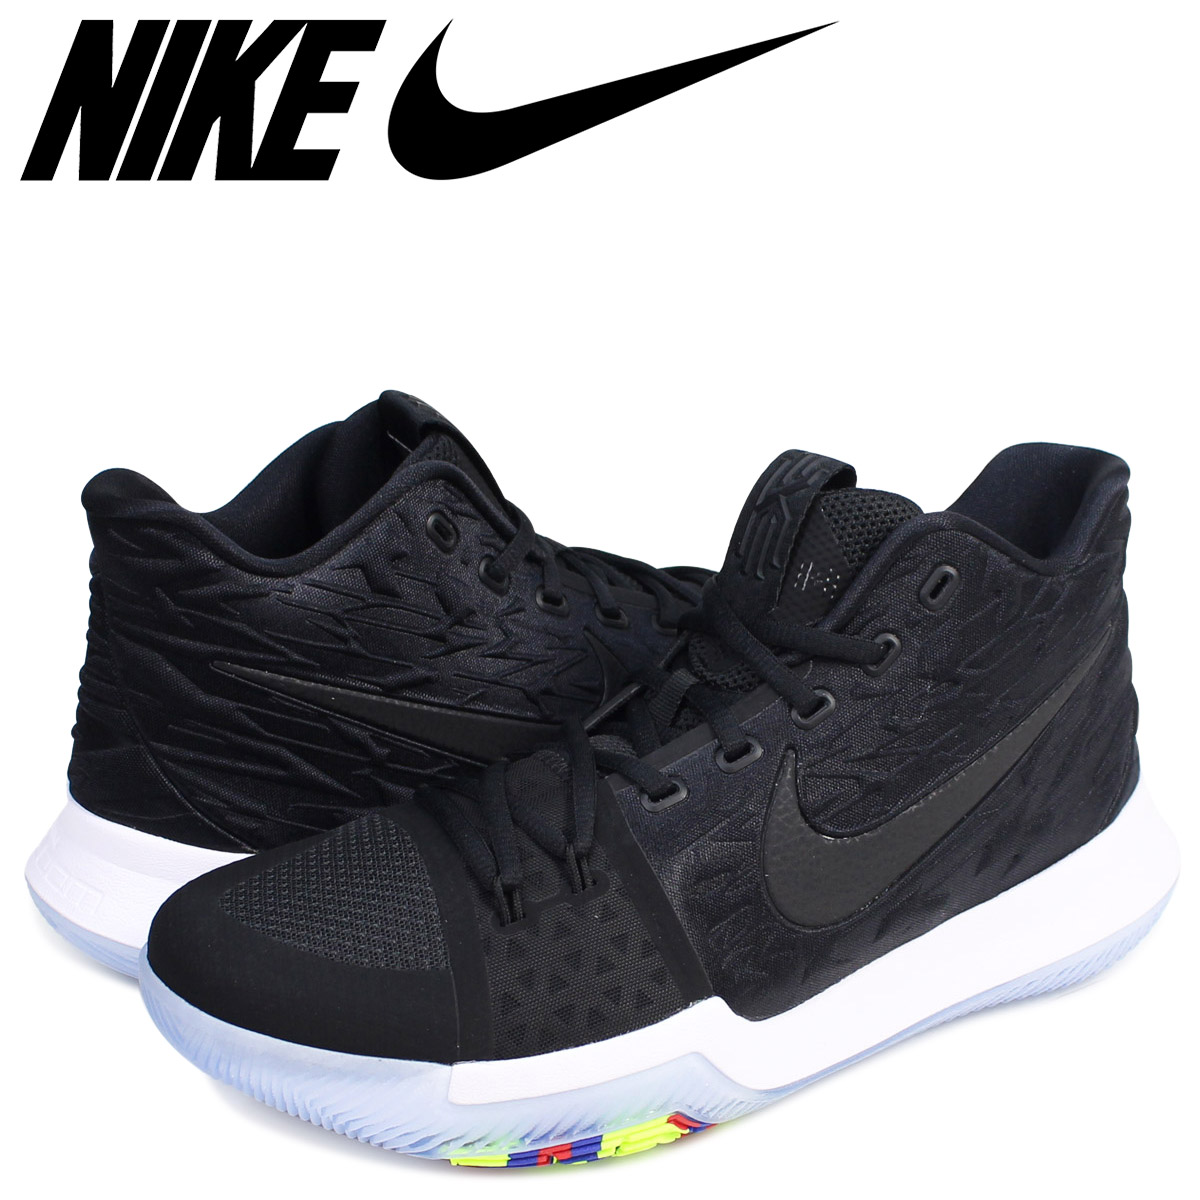 buy popular 9a93a c239e NIKE Nike chi Lee 3 sneakers NIKE KYRIE 3 EP BLACK ICE 852,396-009 chi Lee  Irving men shoes black black